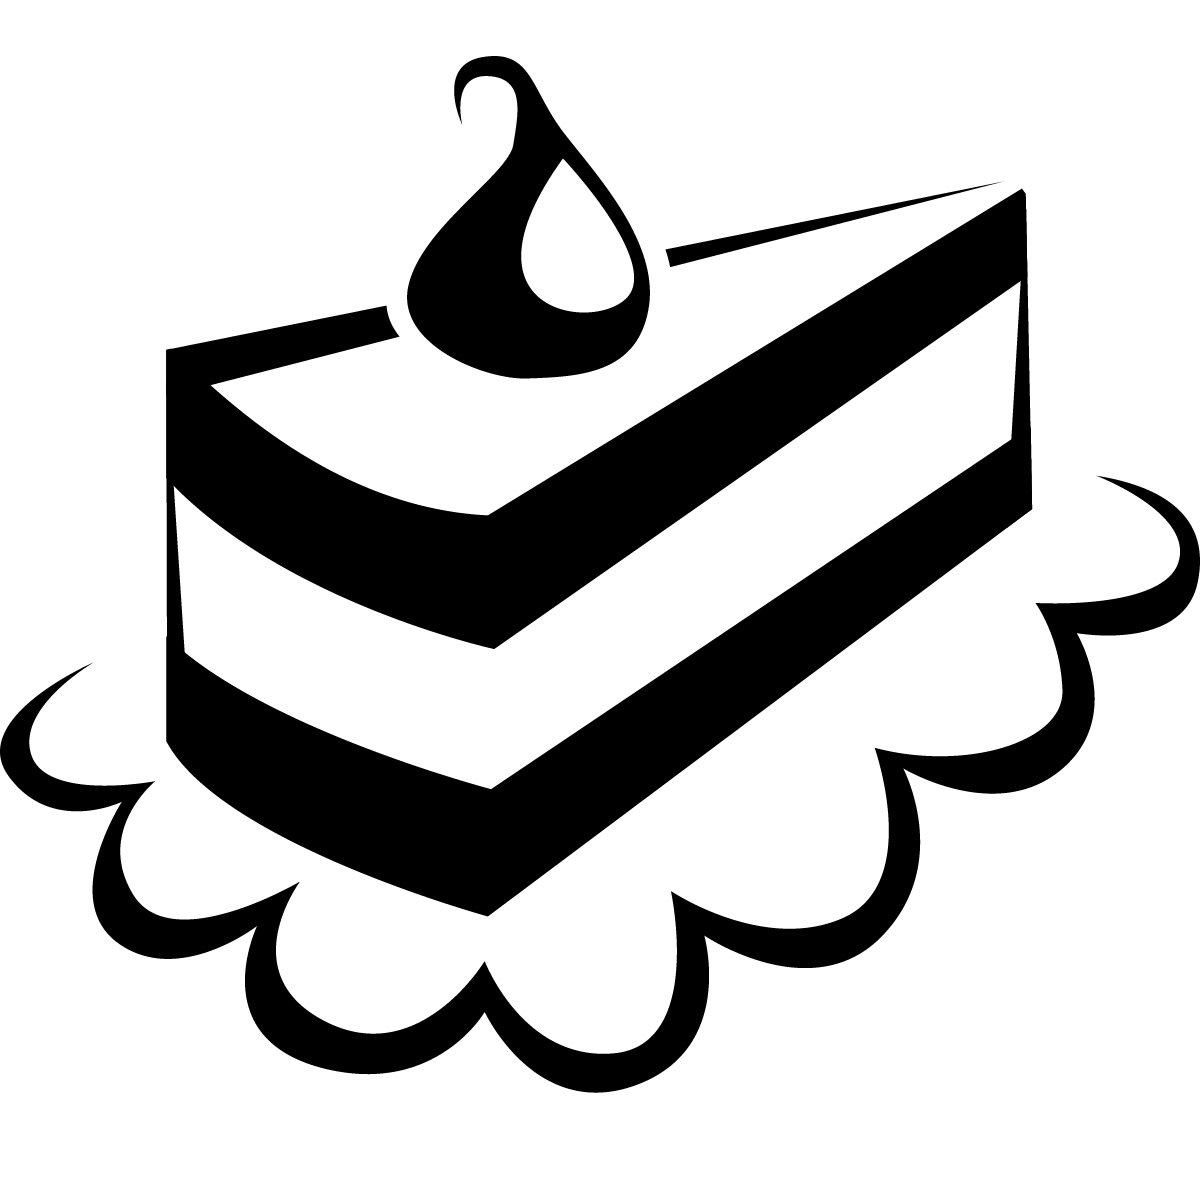 Free Cake Slice Clipart Black And White, Download Free Clip.